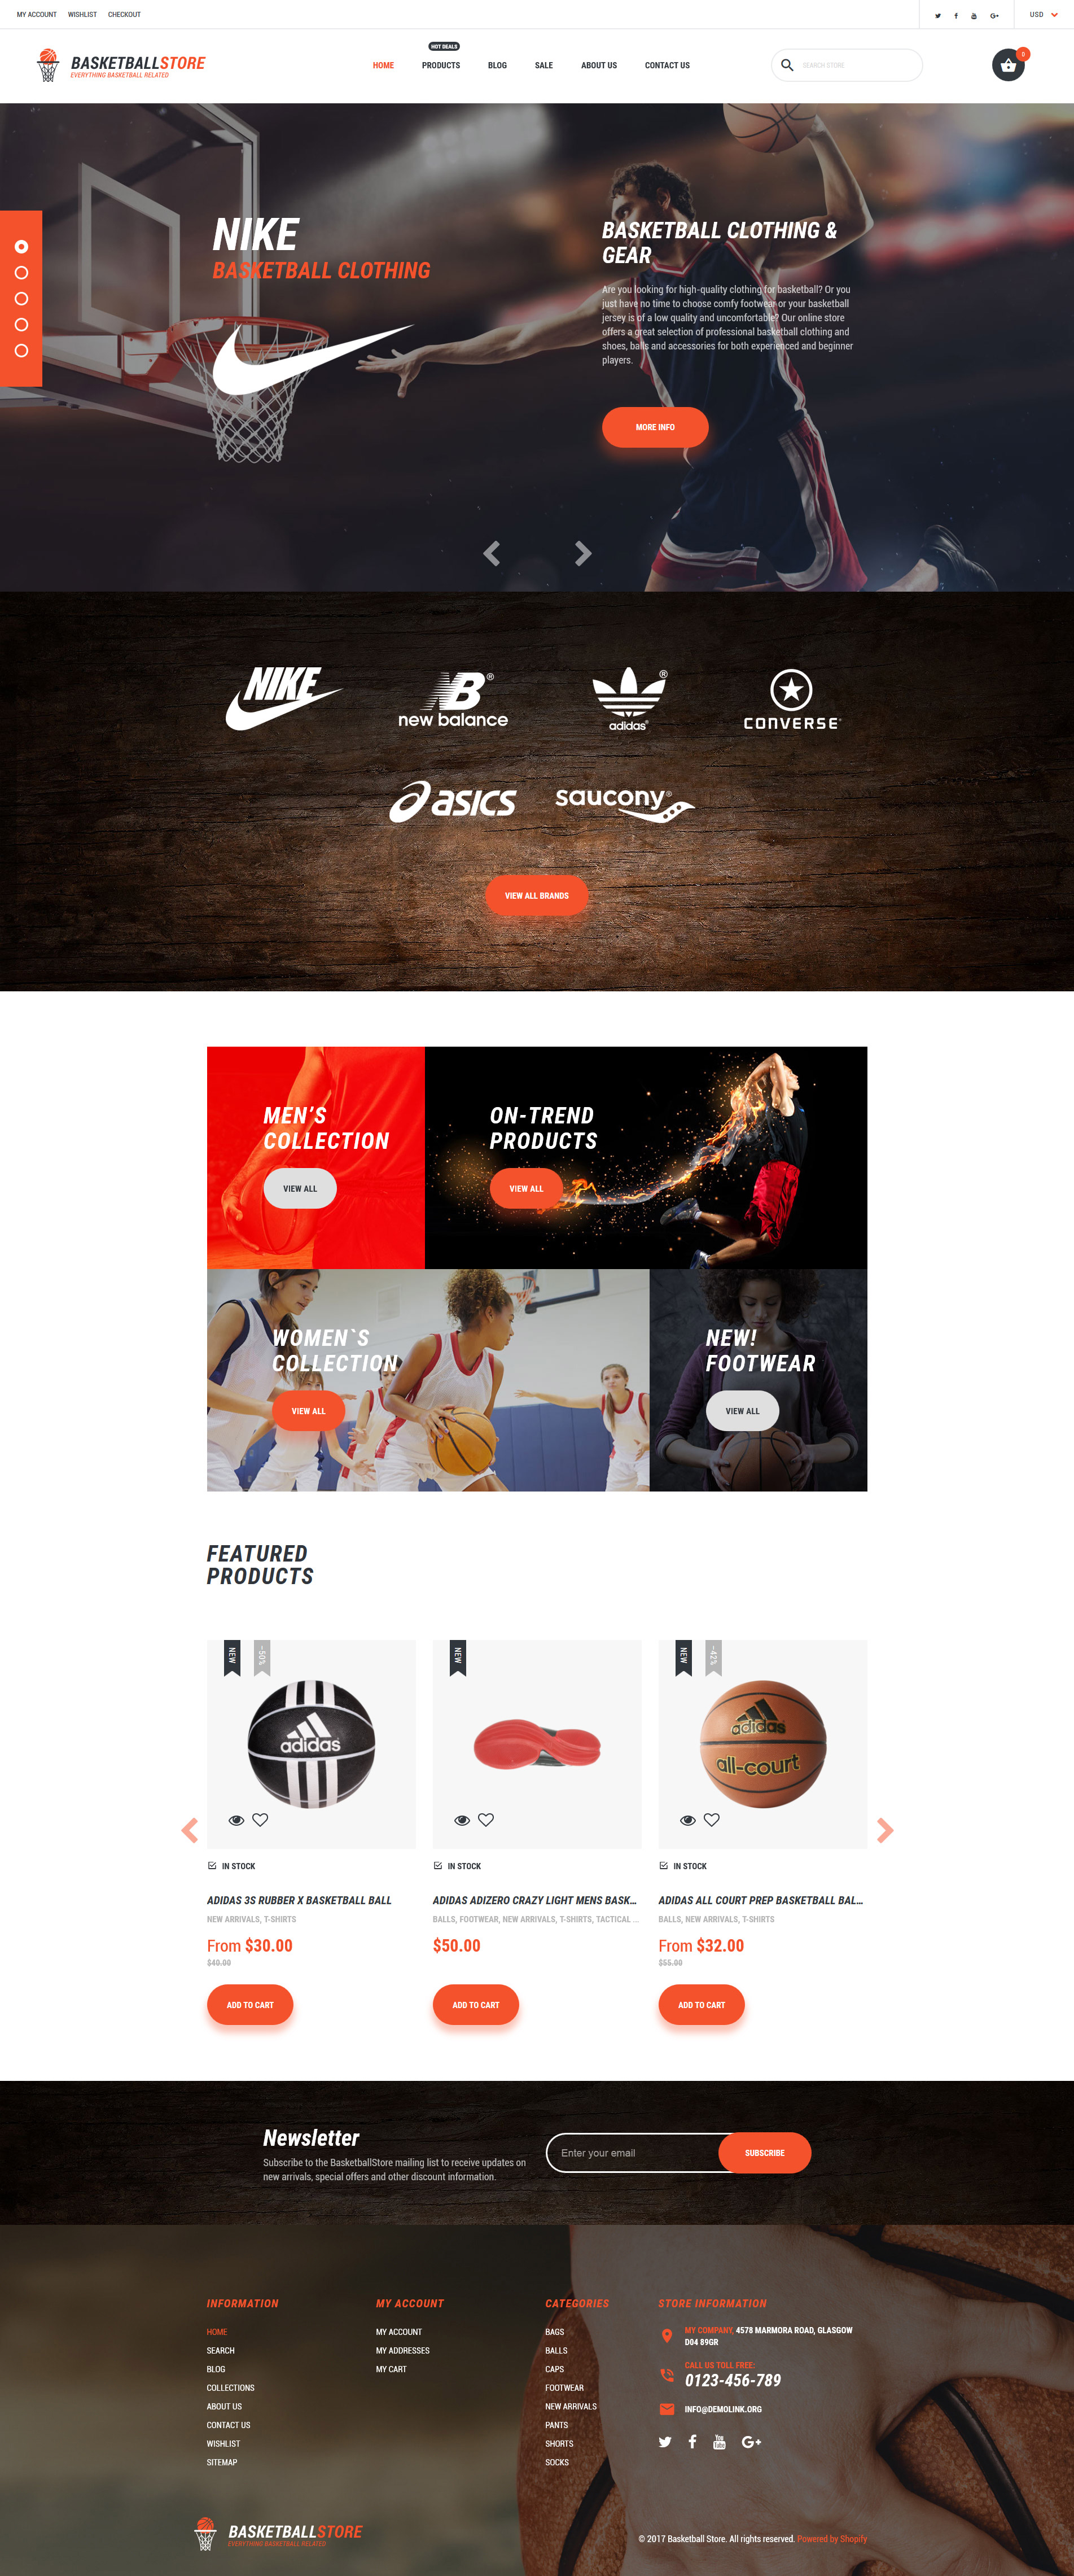 Top Result 50 Unique Basketball Award Certificates Photography 2018 ...